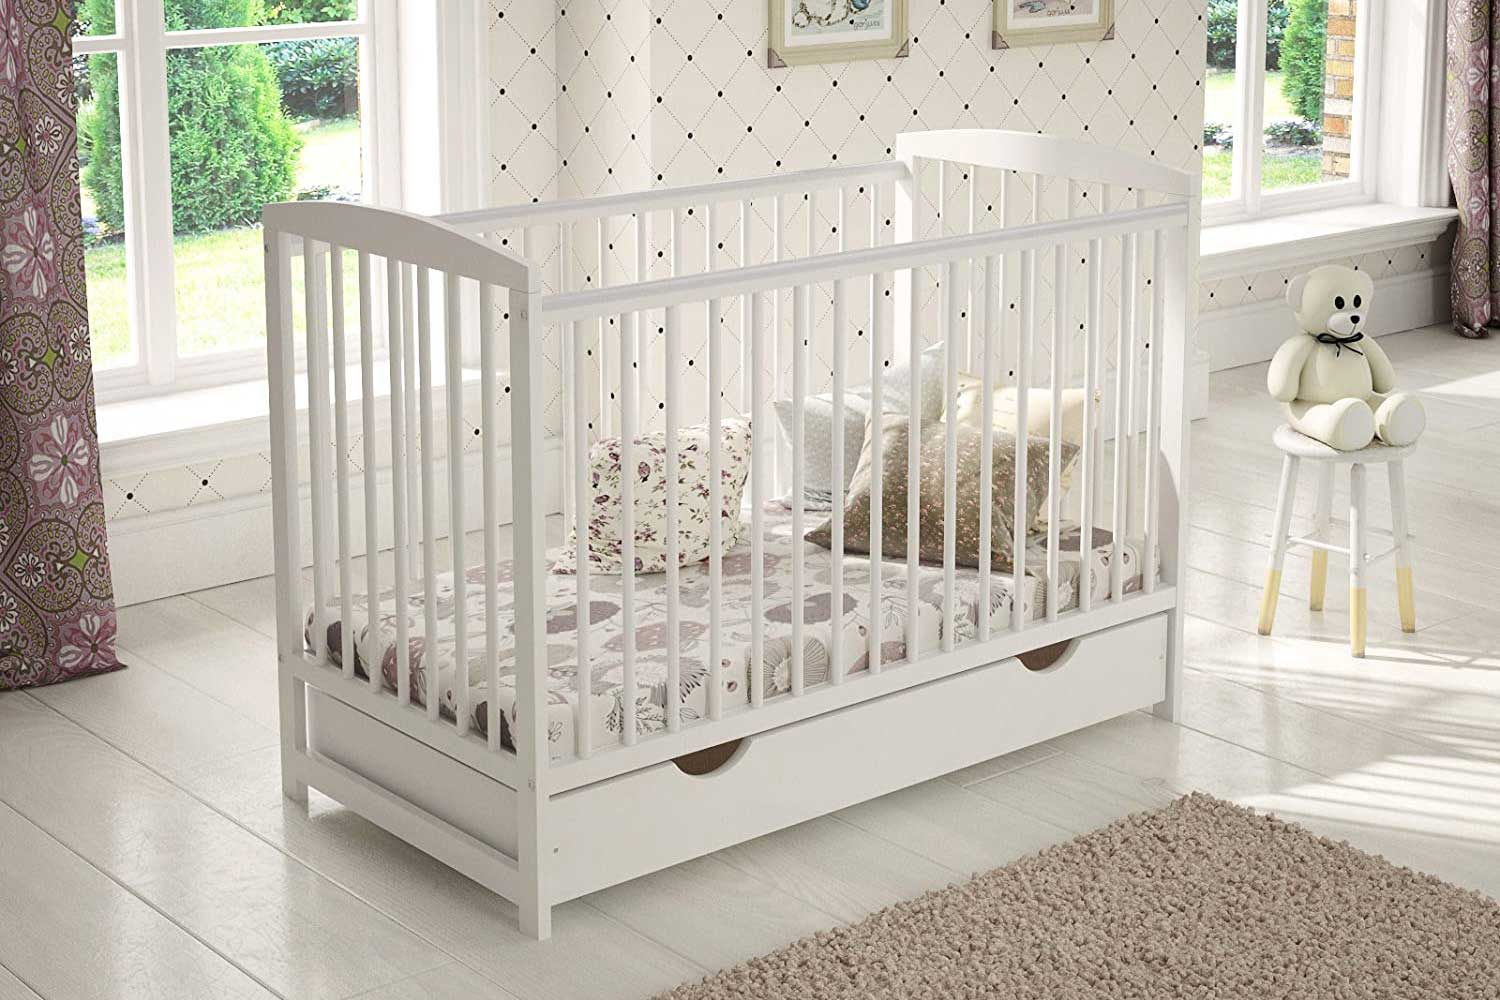 Wooden Baby Cot with Drawer + Foam Mattress + Teething Rails